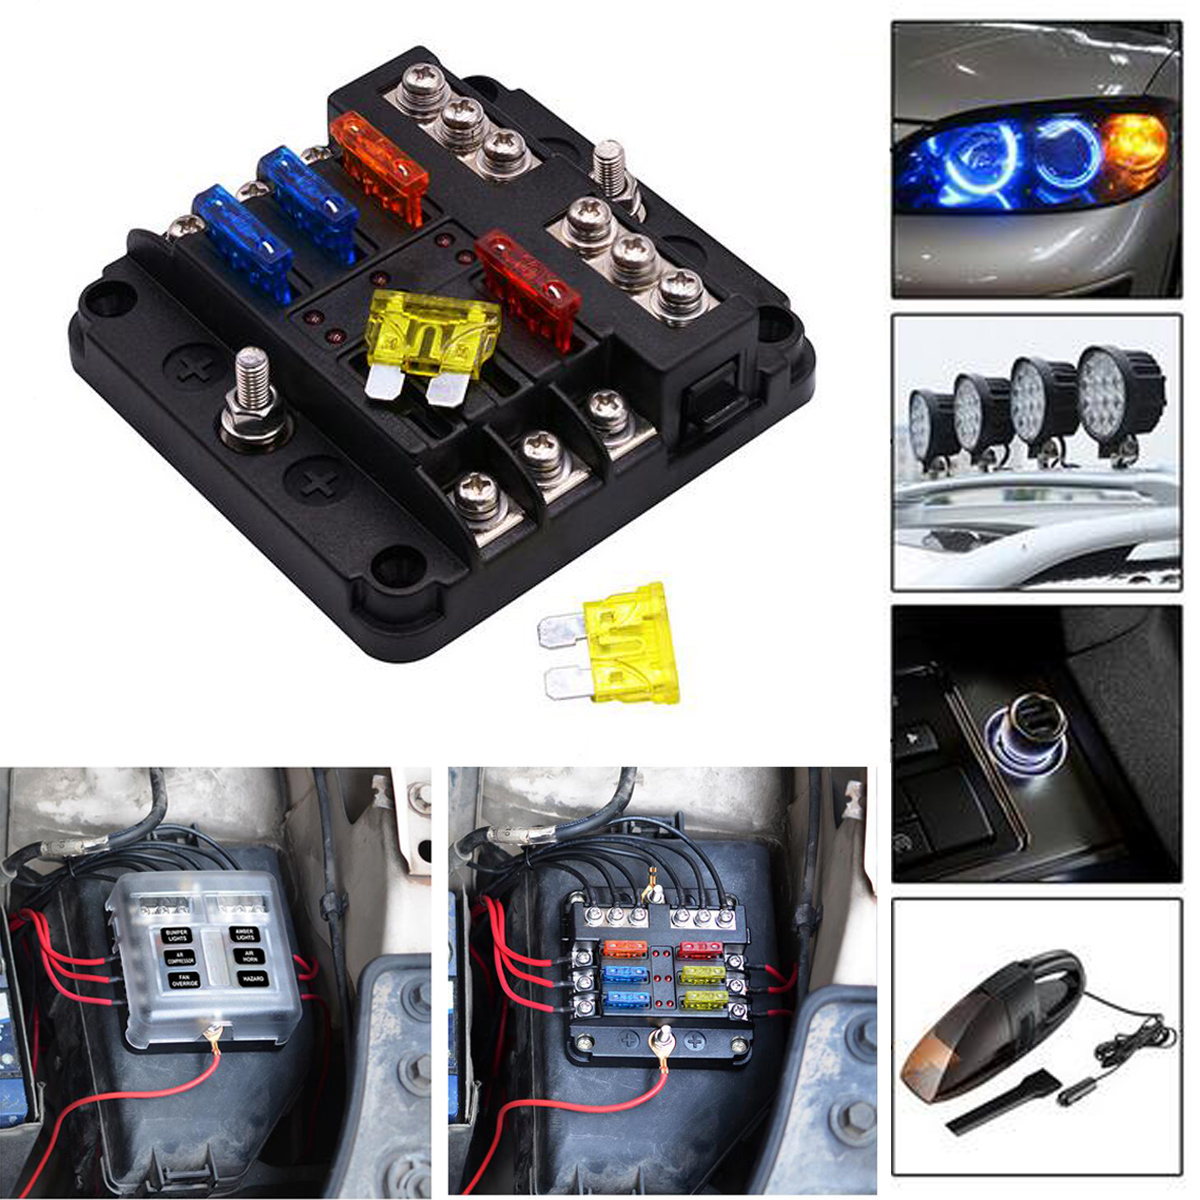 hight resolution of details about 6 way 12v 32v auto car power distribution blade fuse holder box block board uscc